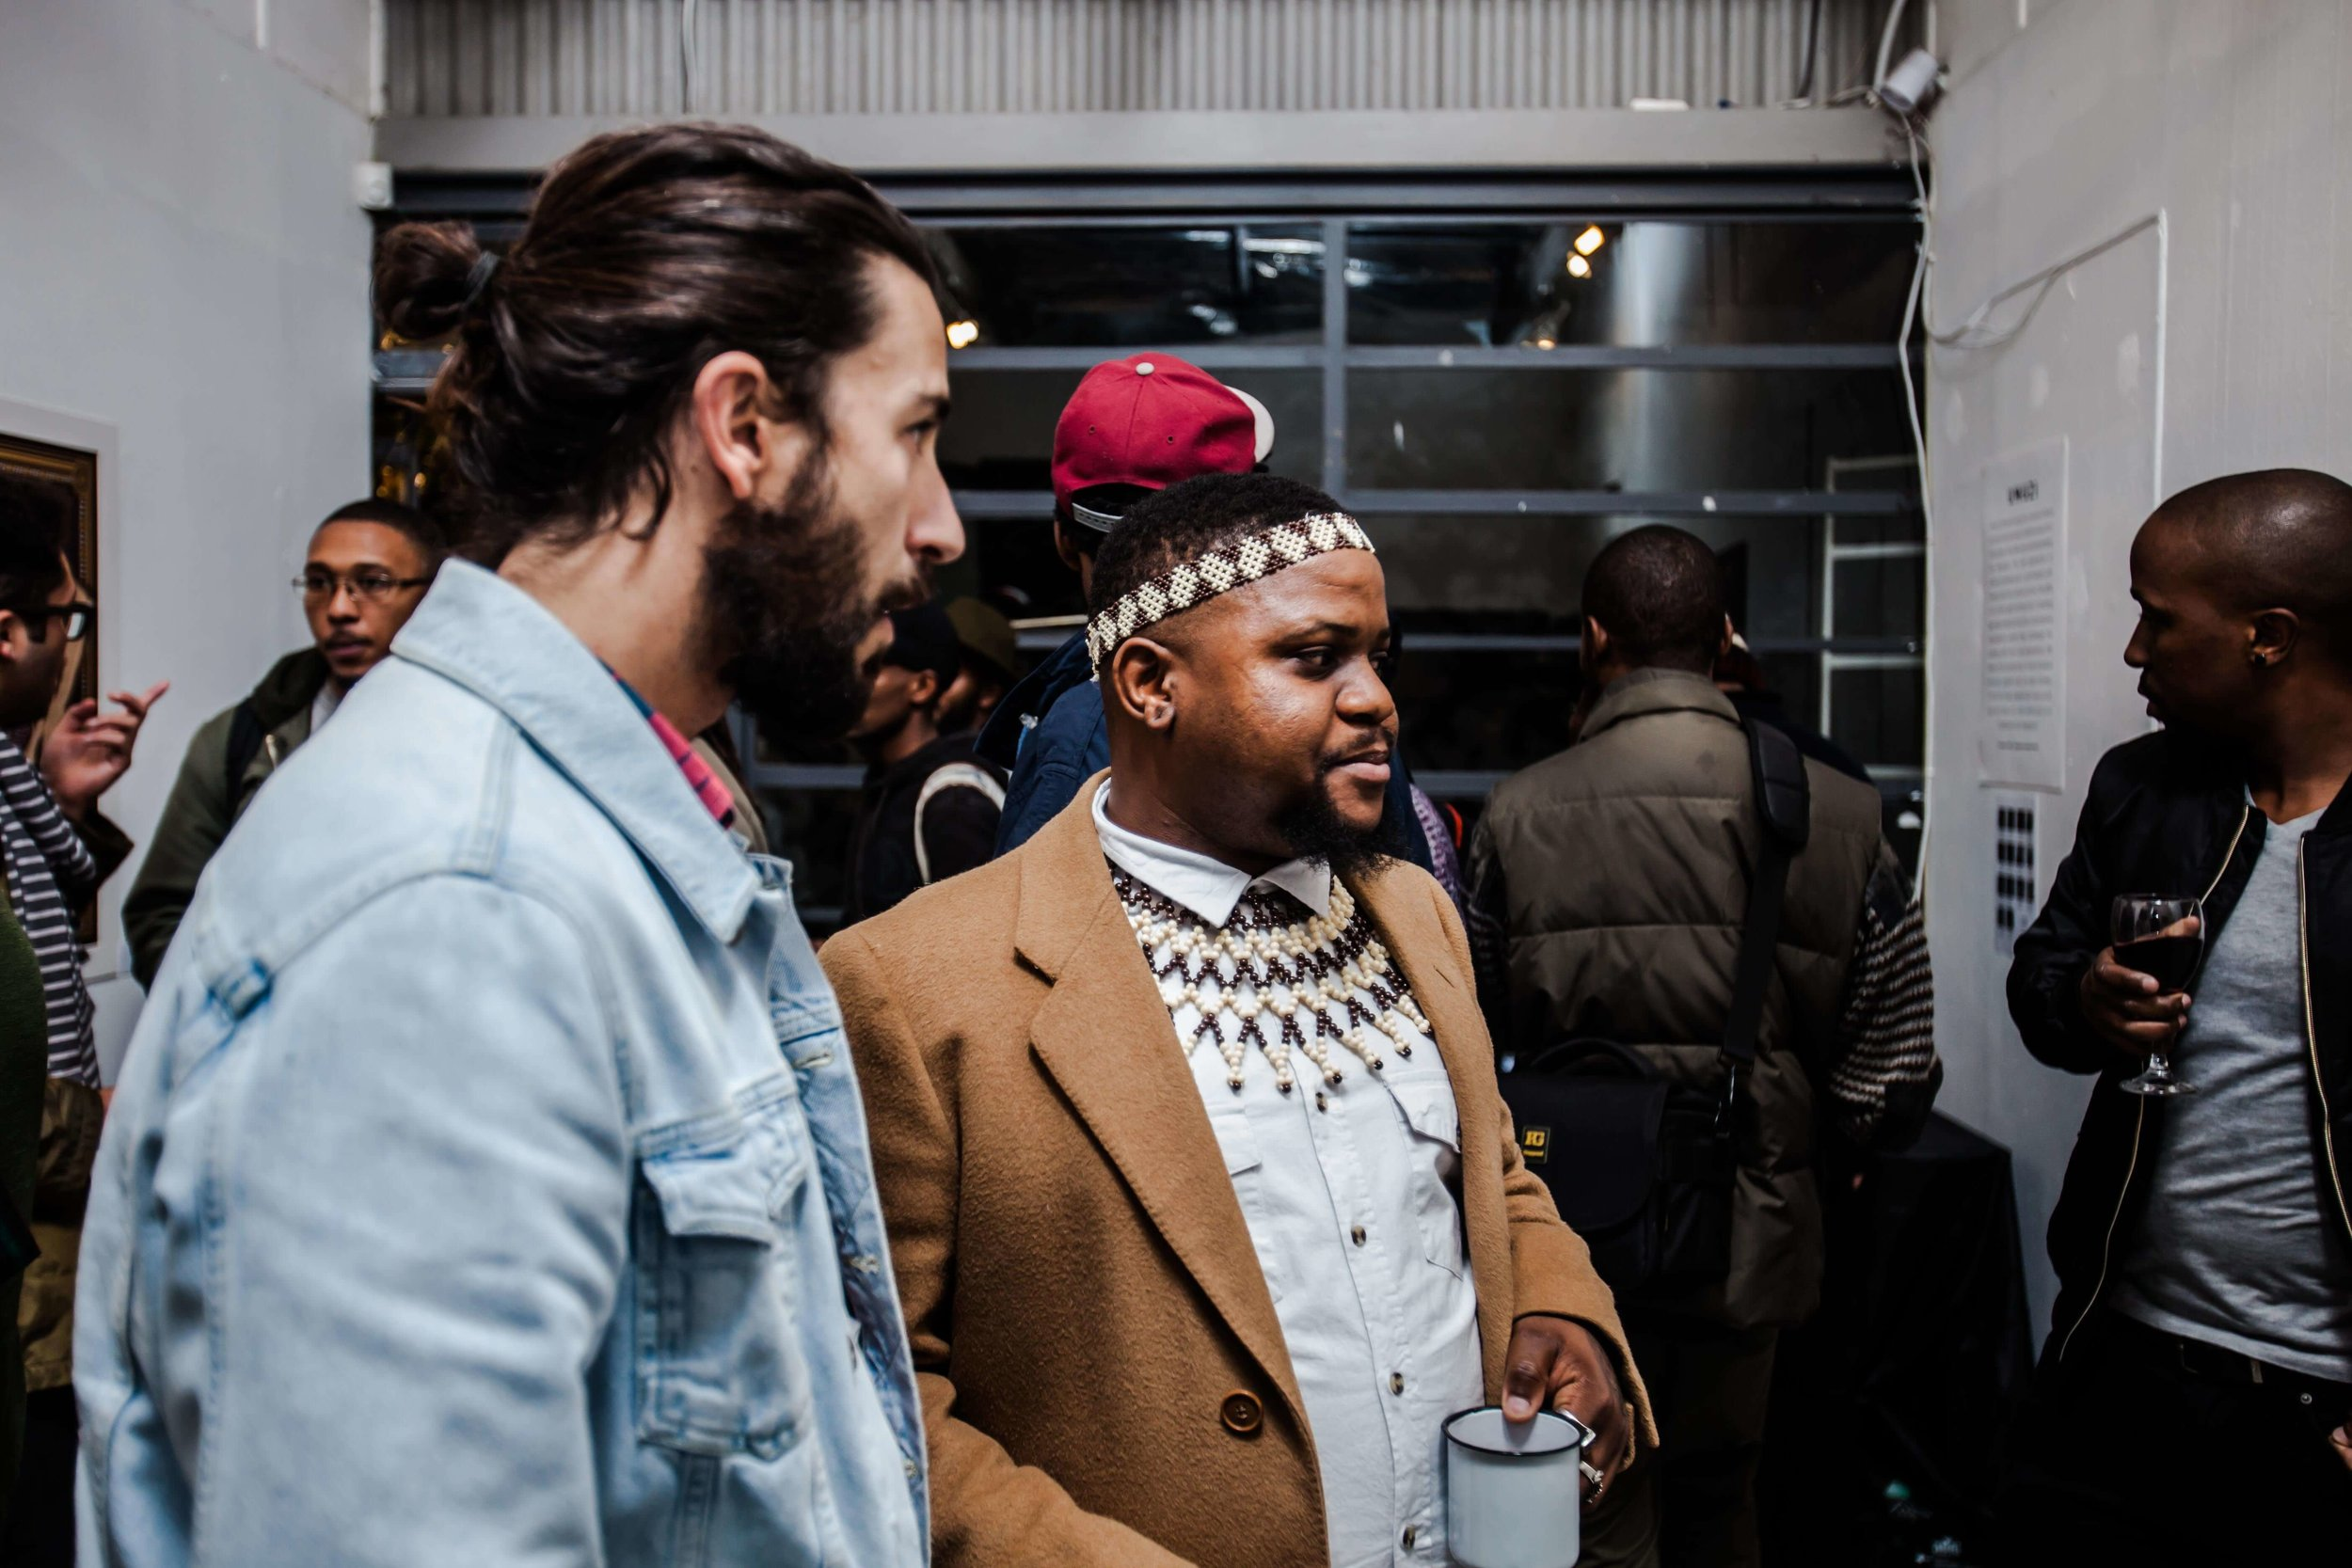 Modise Sepend_Traces Of Culture (13 of 485).jpg